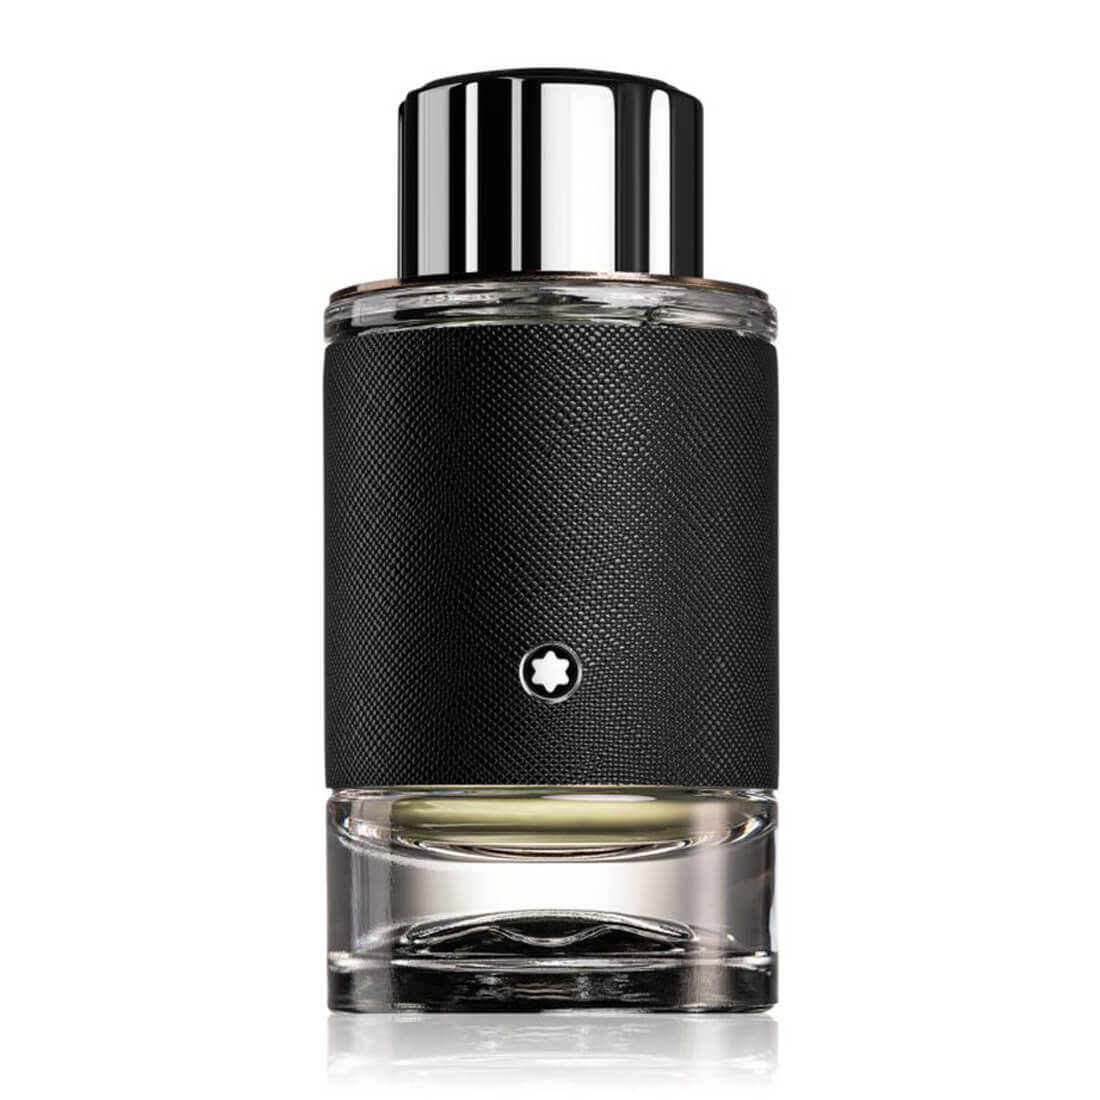 Montblanc Explorer Eau De Perfume For Men - 100ml